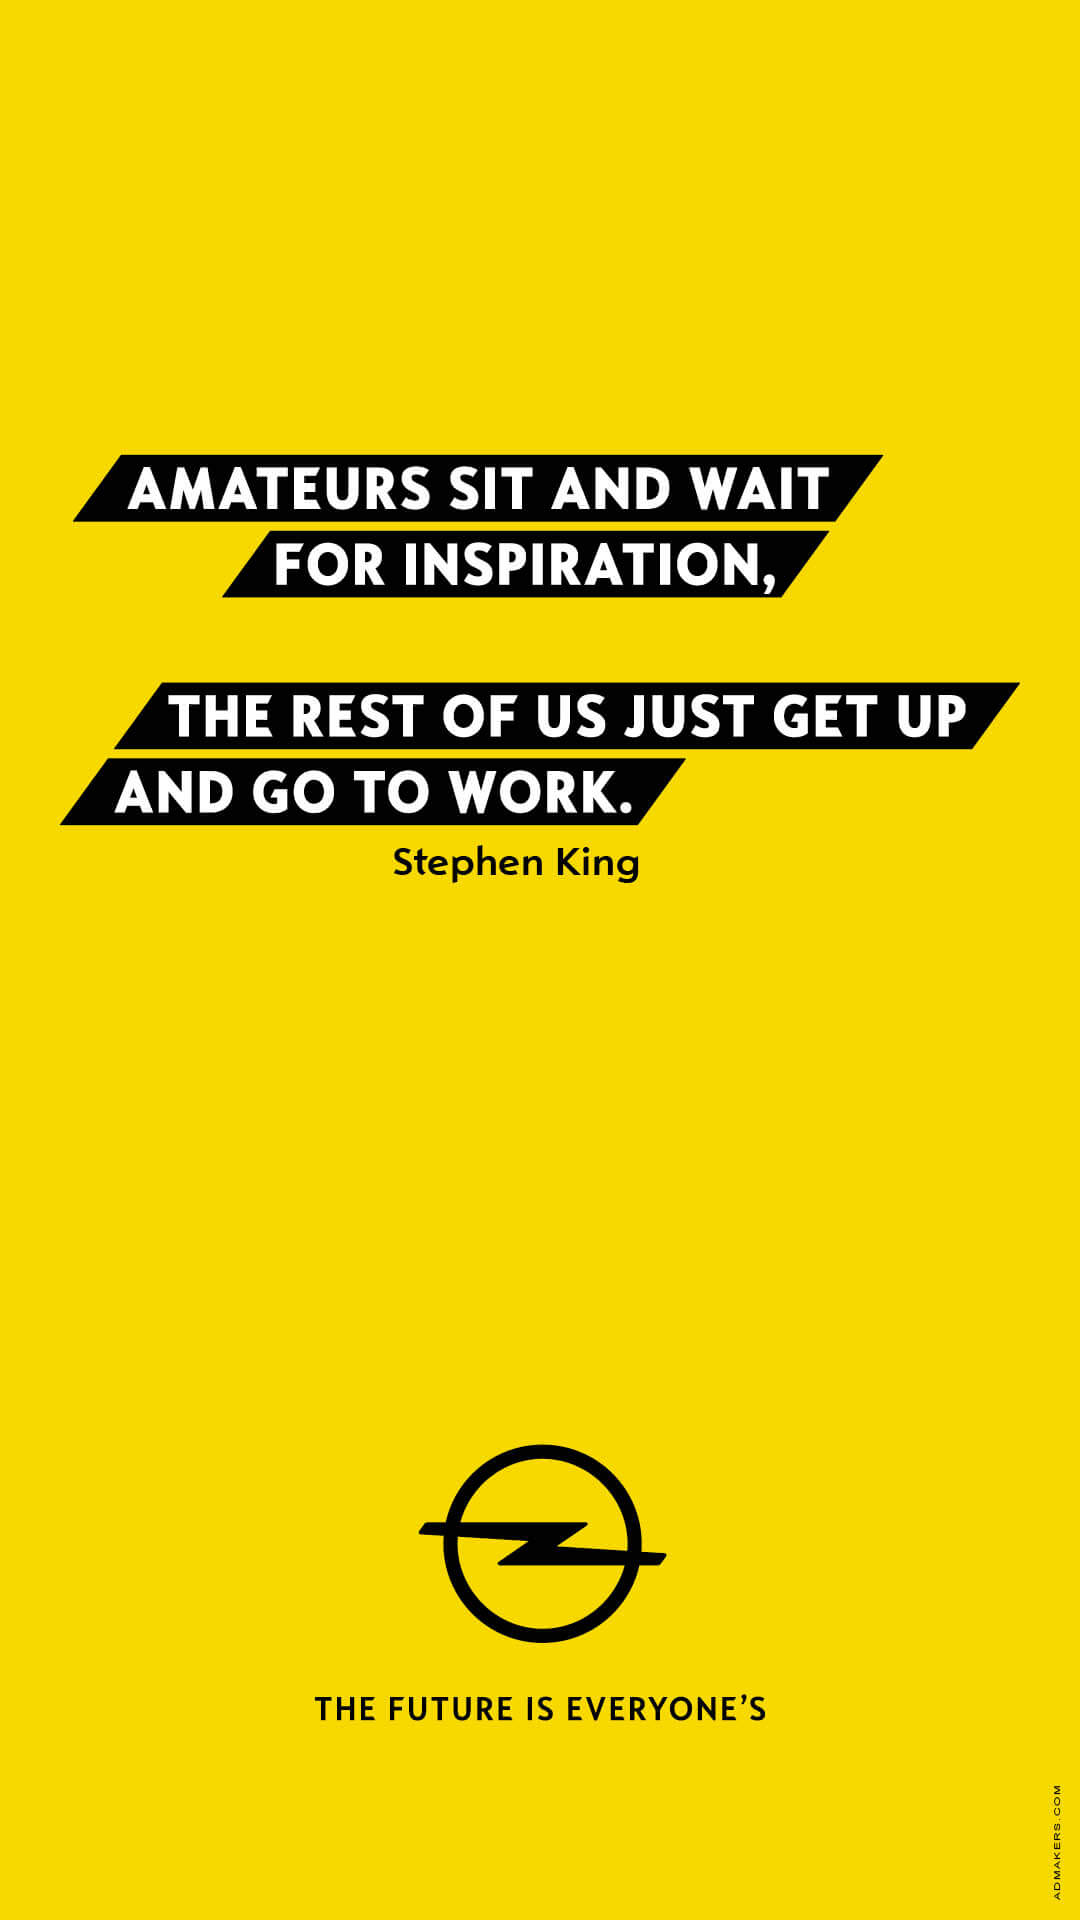 Amateurs sit and wait for inspiration, the rest of us just get up and go to work.